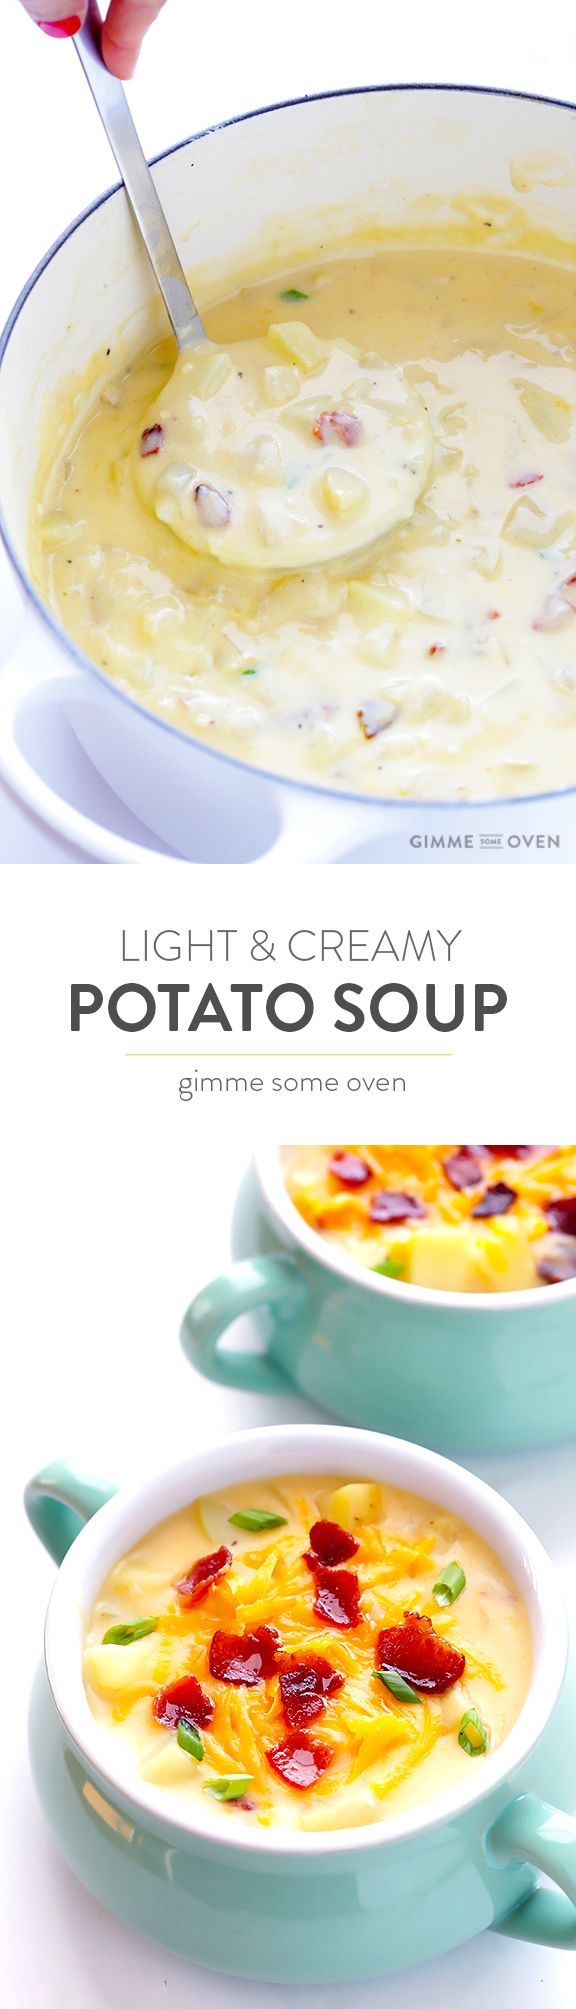 My all-time favorite Potato Soup recipe!  It's quick and easy to make, totally delicious and rich and creamy, yet it's lightened up with a few simple tweaks.  (No heavy cream required!) | gimmesomeoven.com